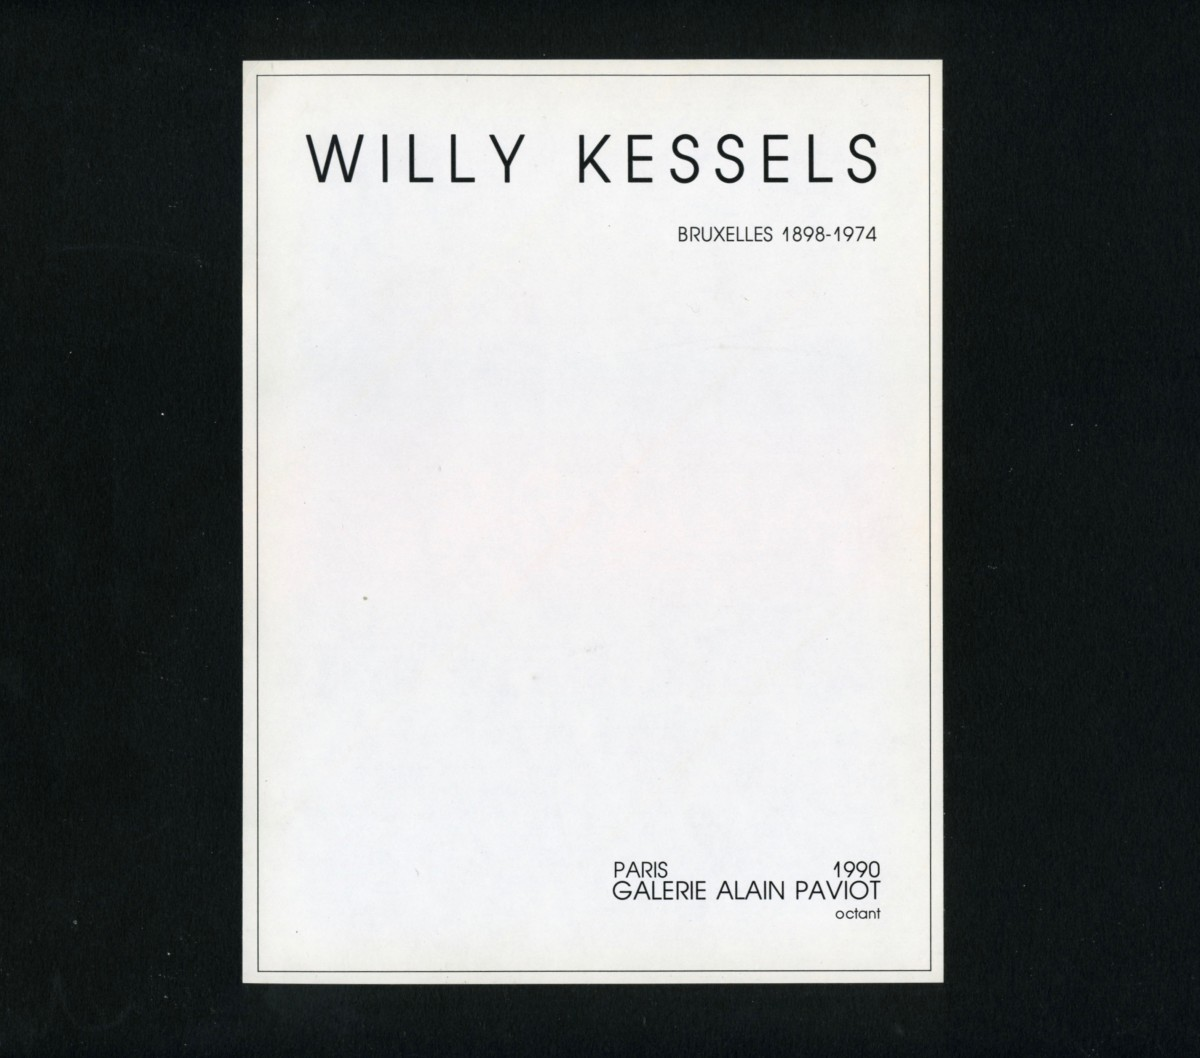 willy-kessels_françoise-paviot